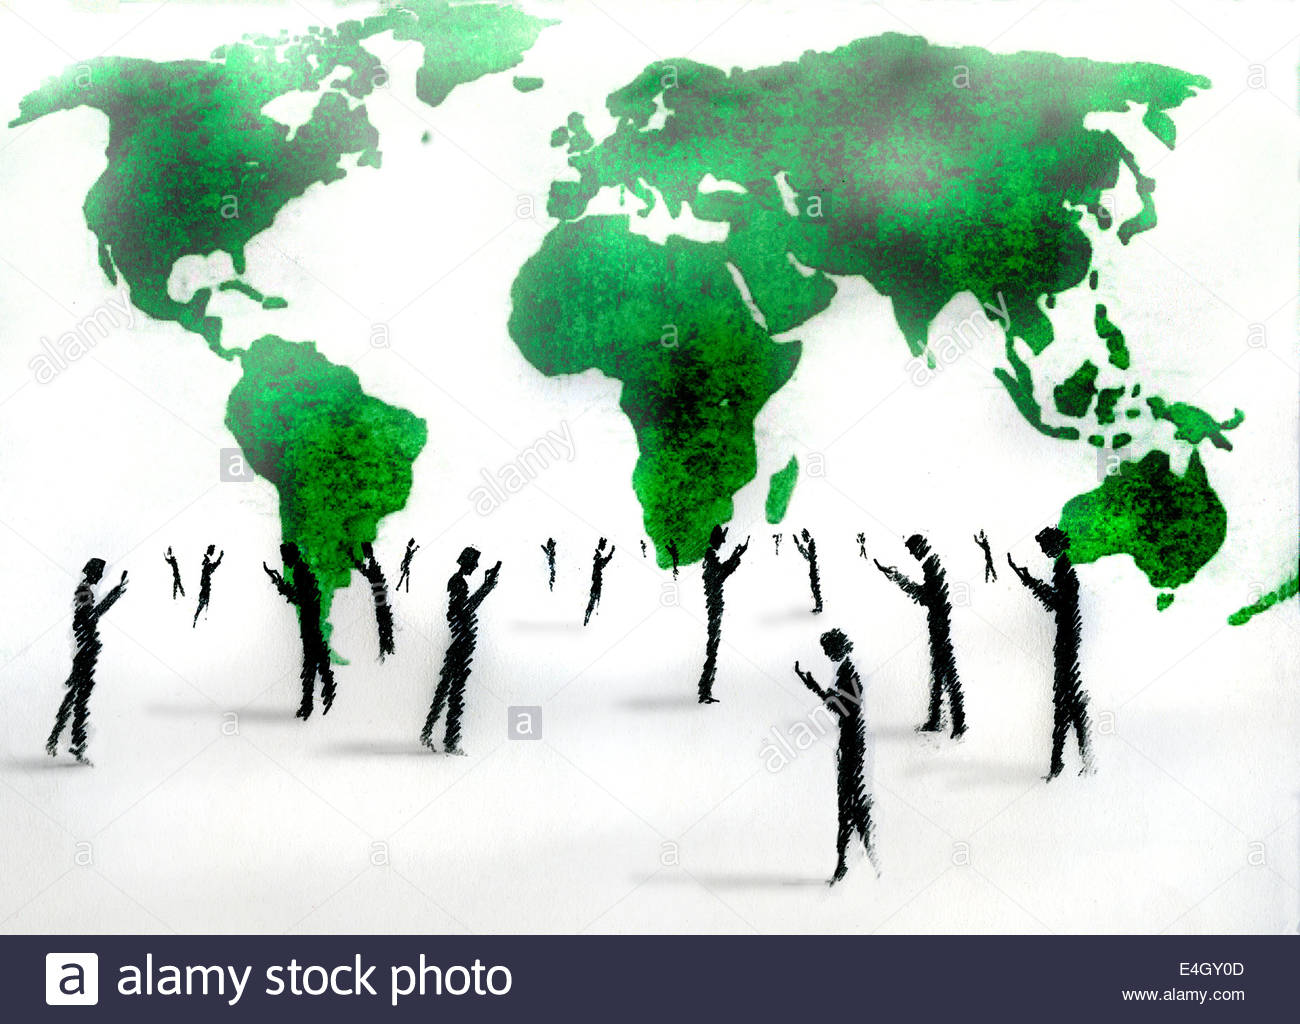 Business men and women checking cell phones in front of world map - Stock Image